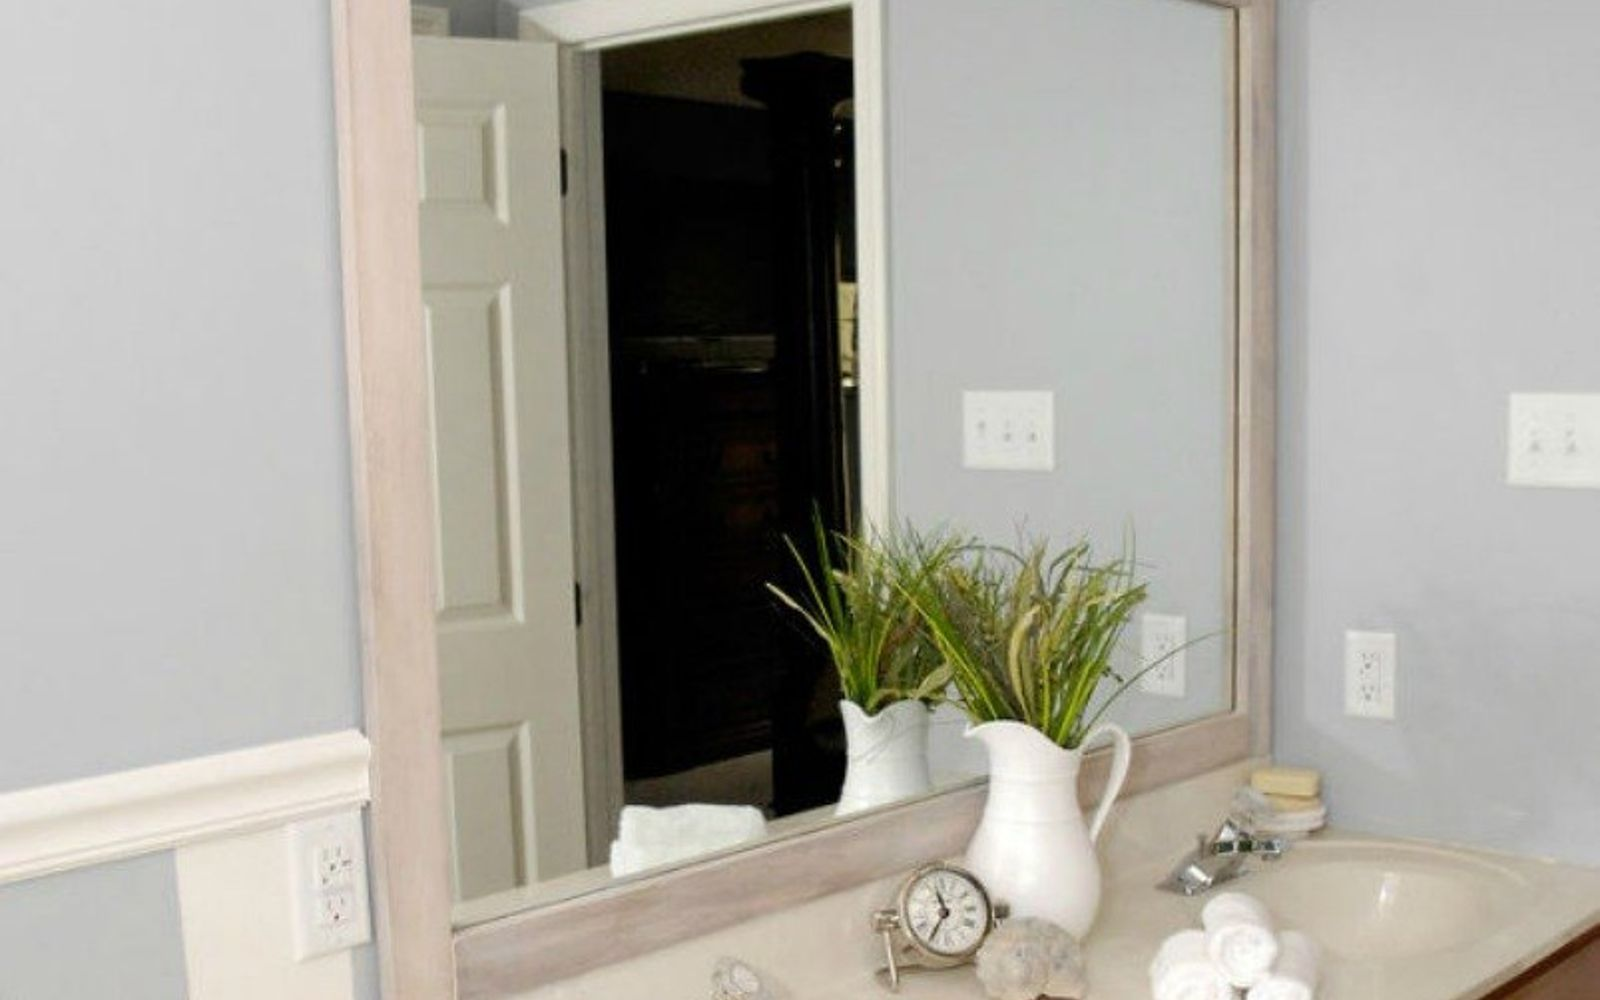 Bathroom Mirror Glued To Wall 10 stunning ways to transform your bathroom mirror without